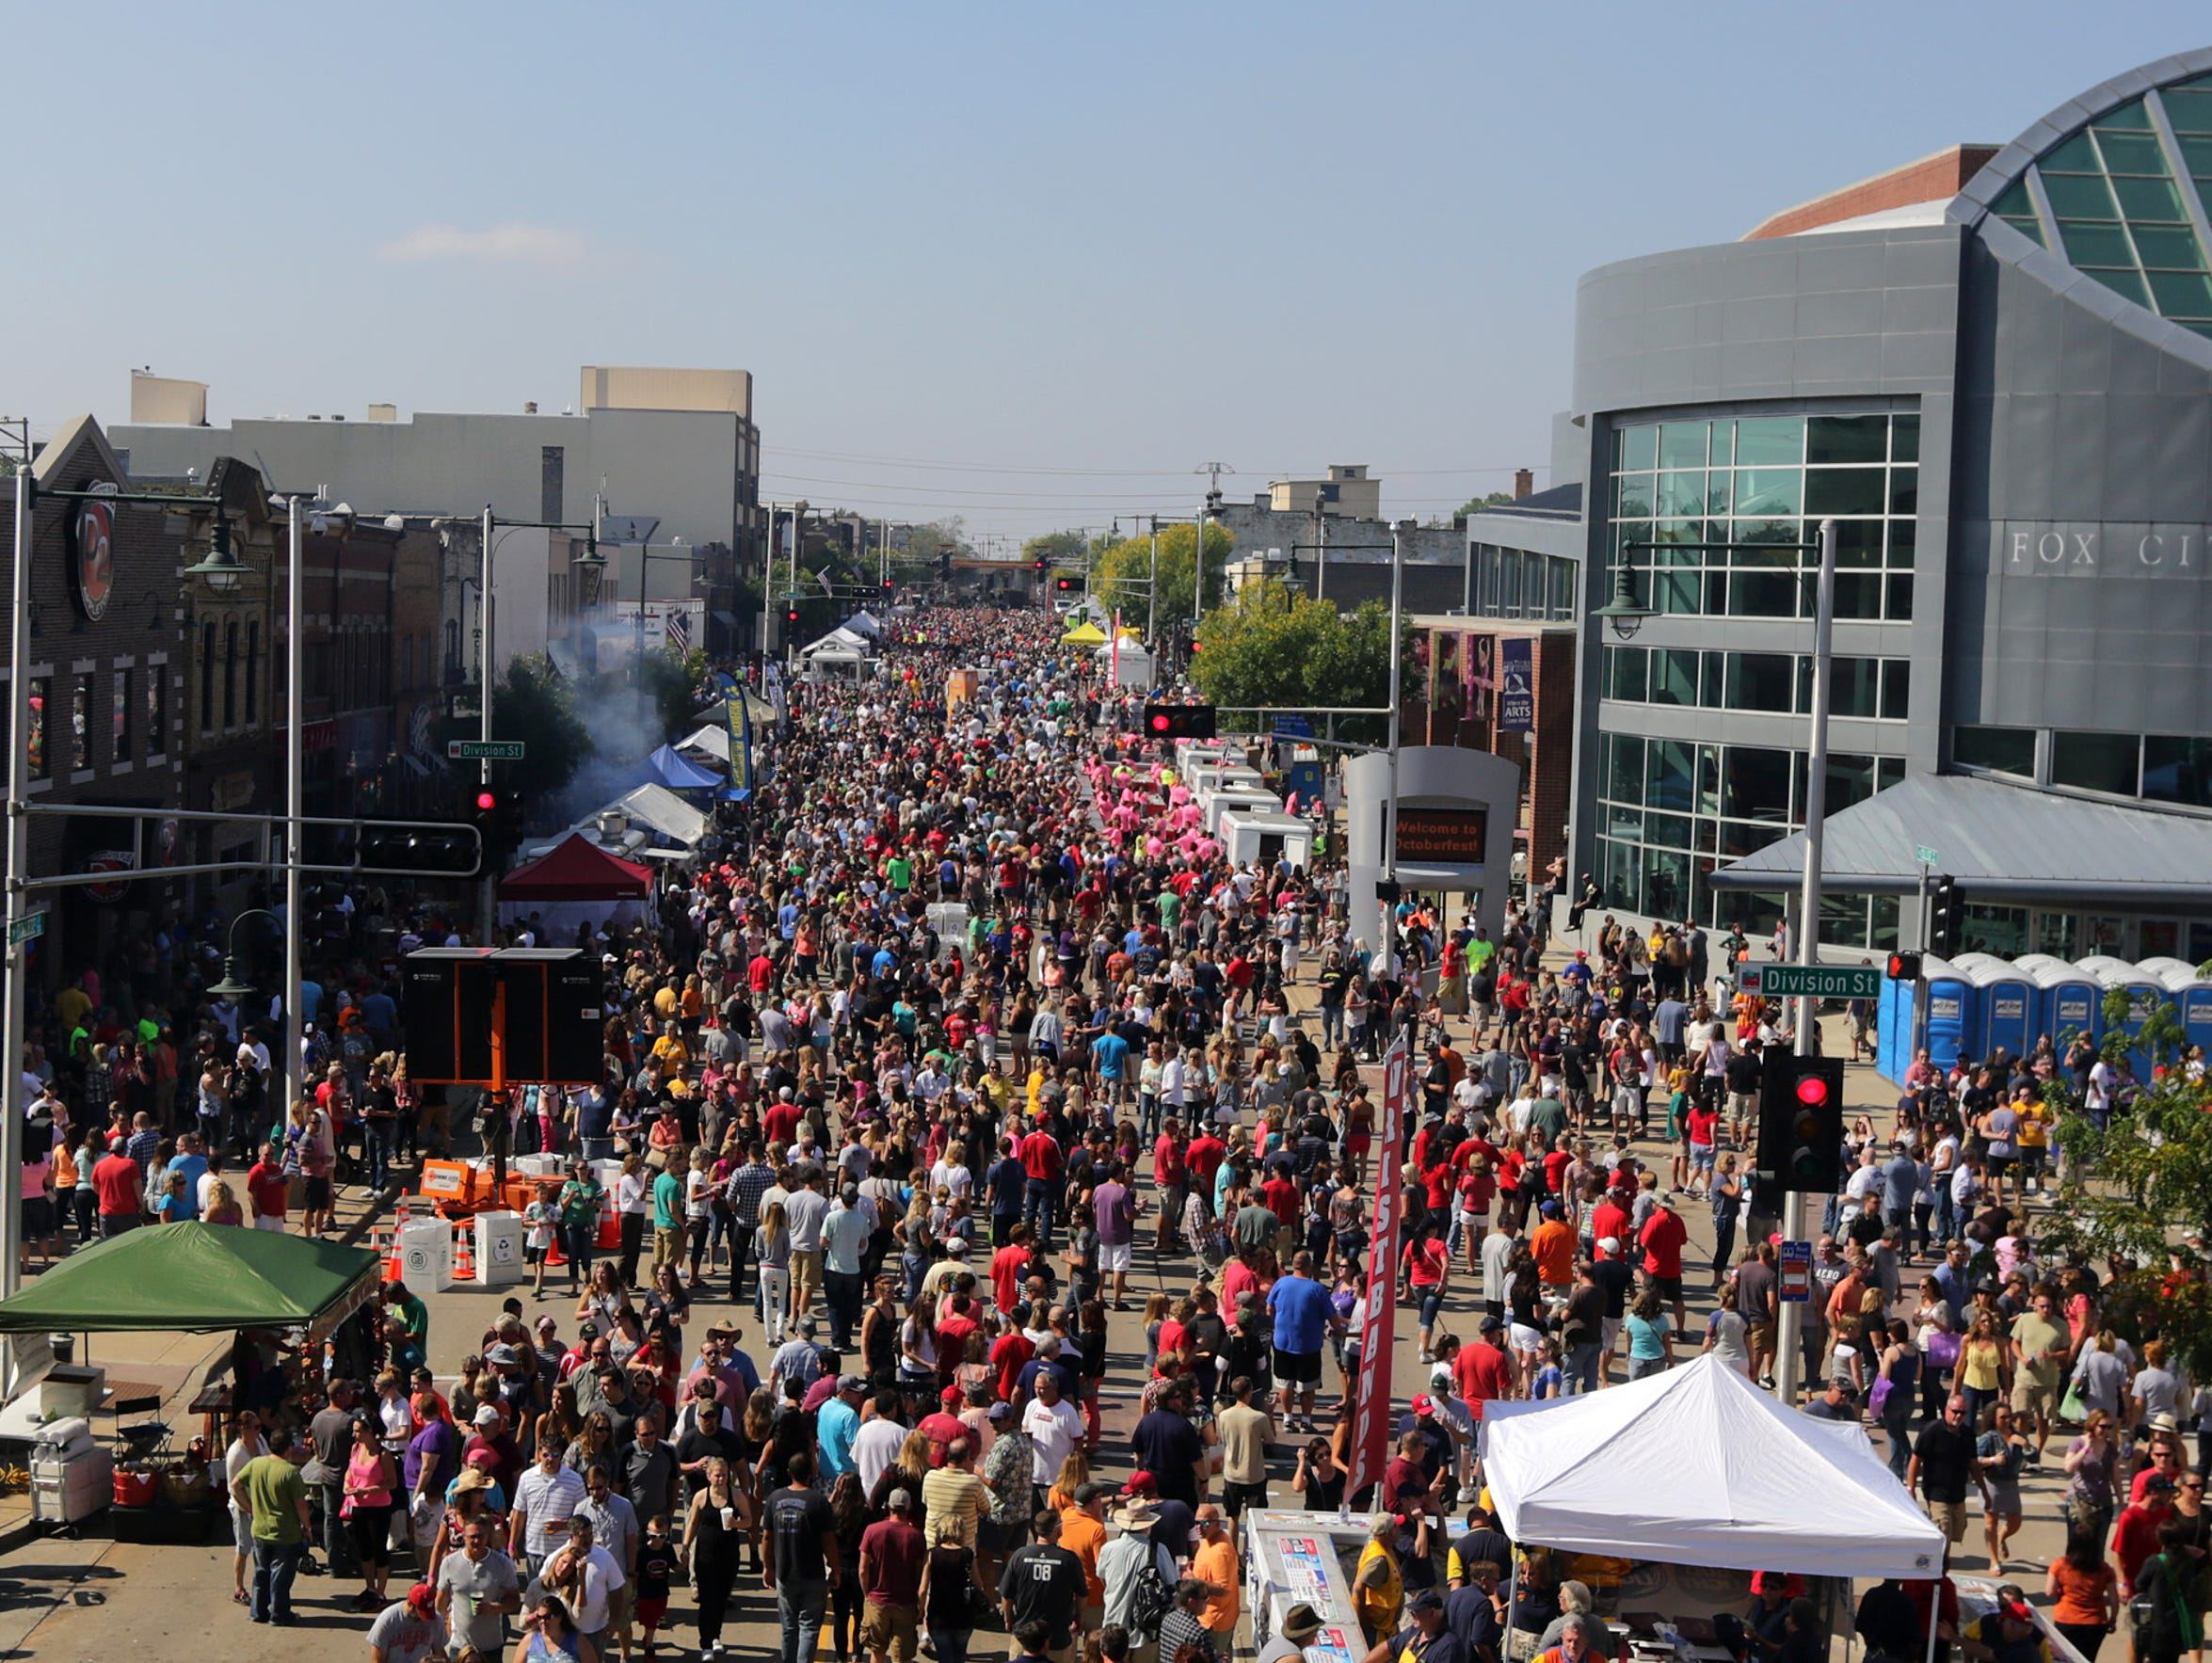 The sea of humanity that is Octoberfest will cap another